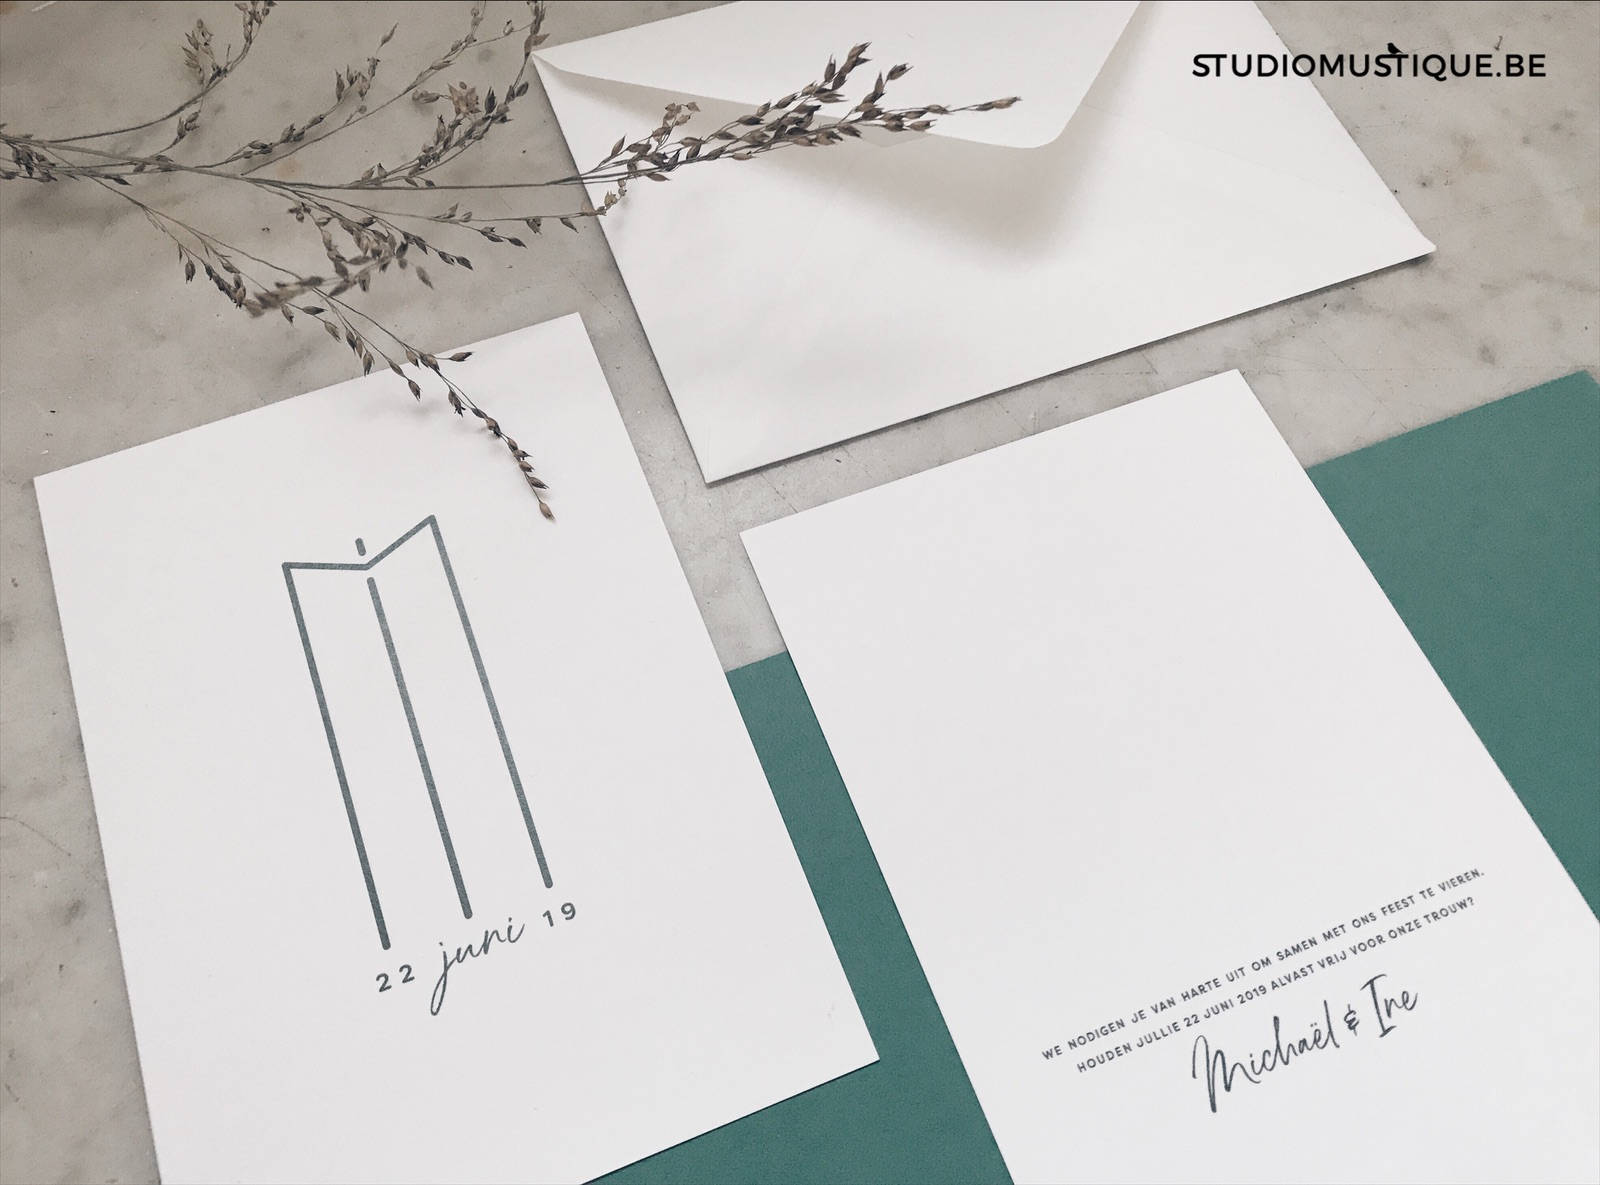 Huwelijksuitnodigingen wedding stationery logo Ine & Michael groen colorplan forest green